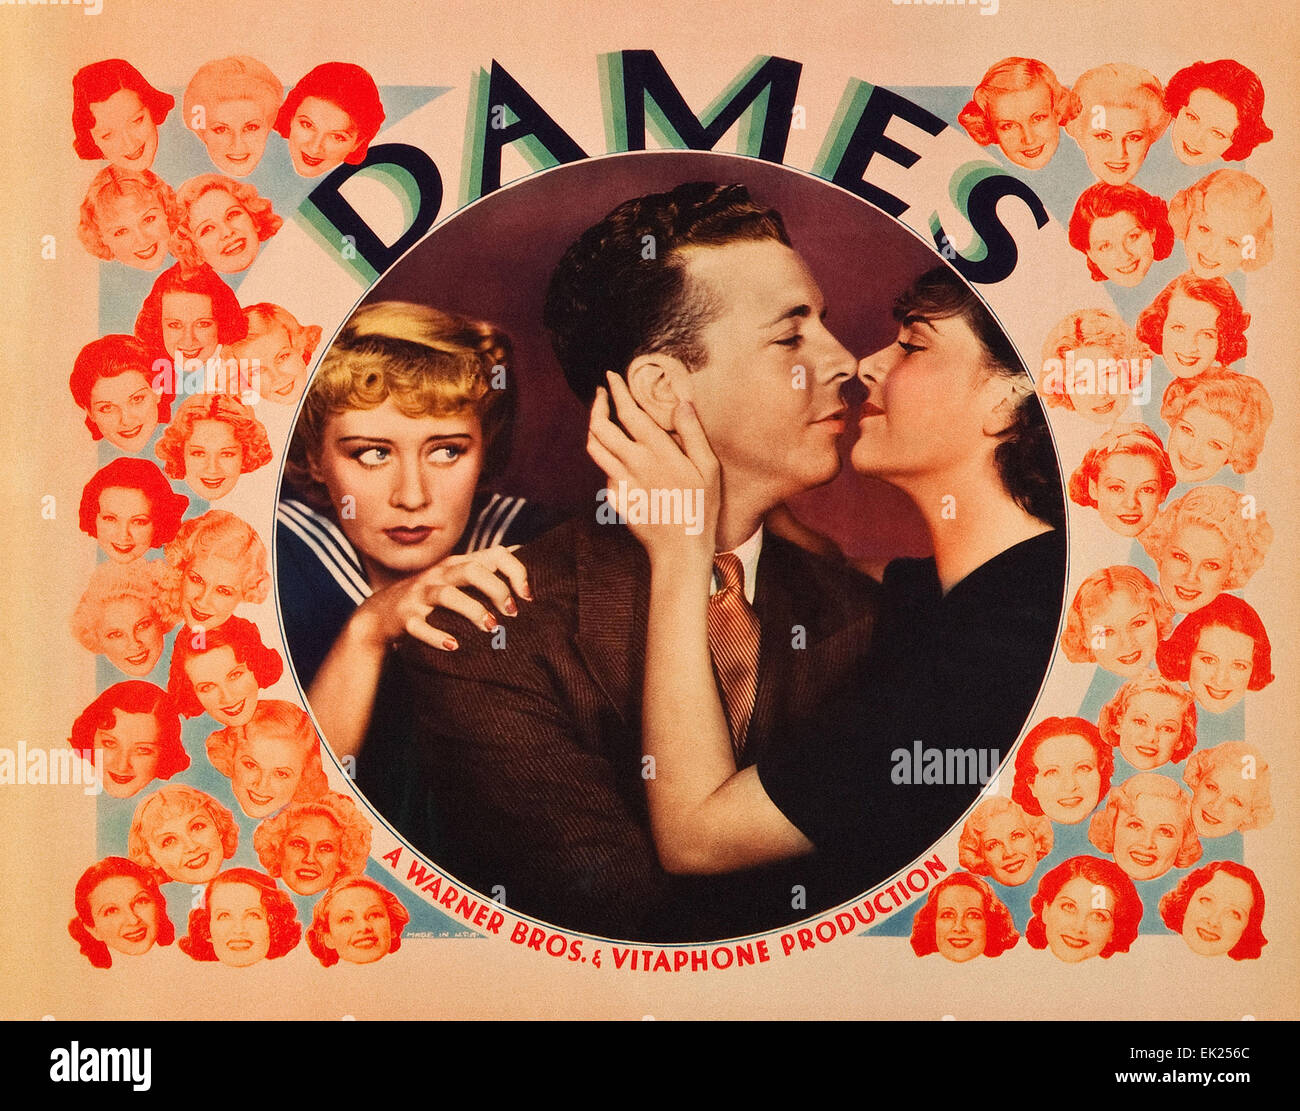 Dames Movie Poster Stock Photo 80567940 Alamy